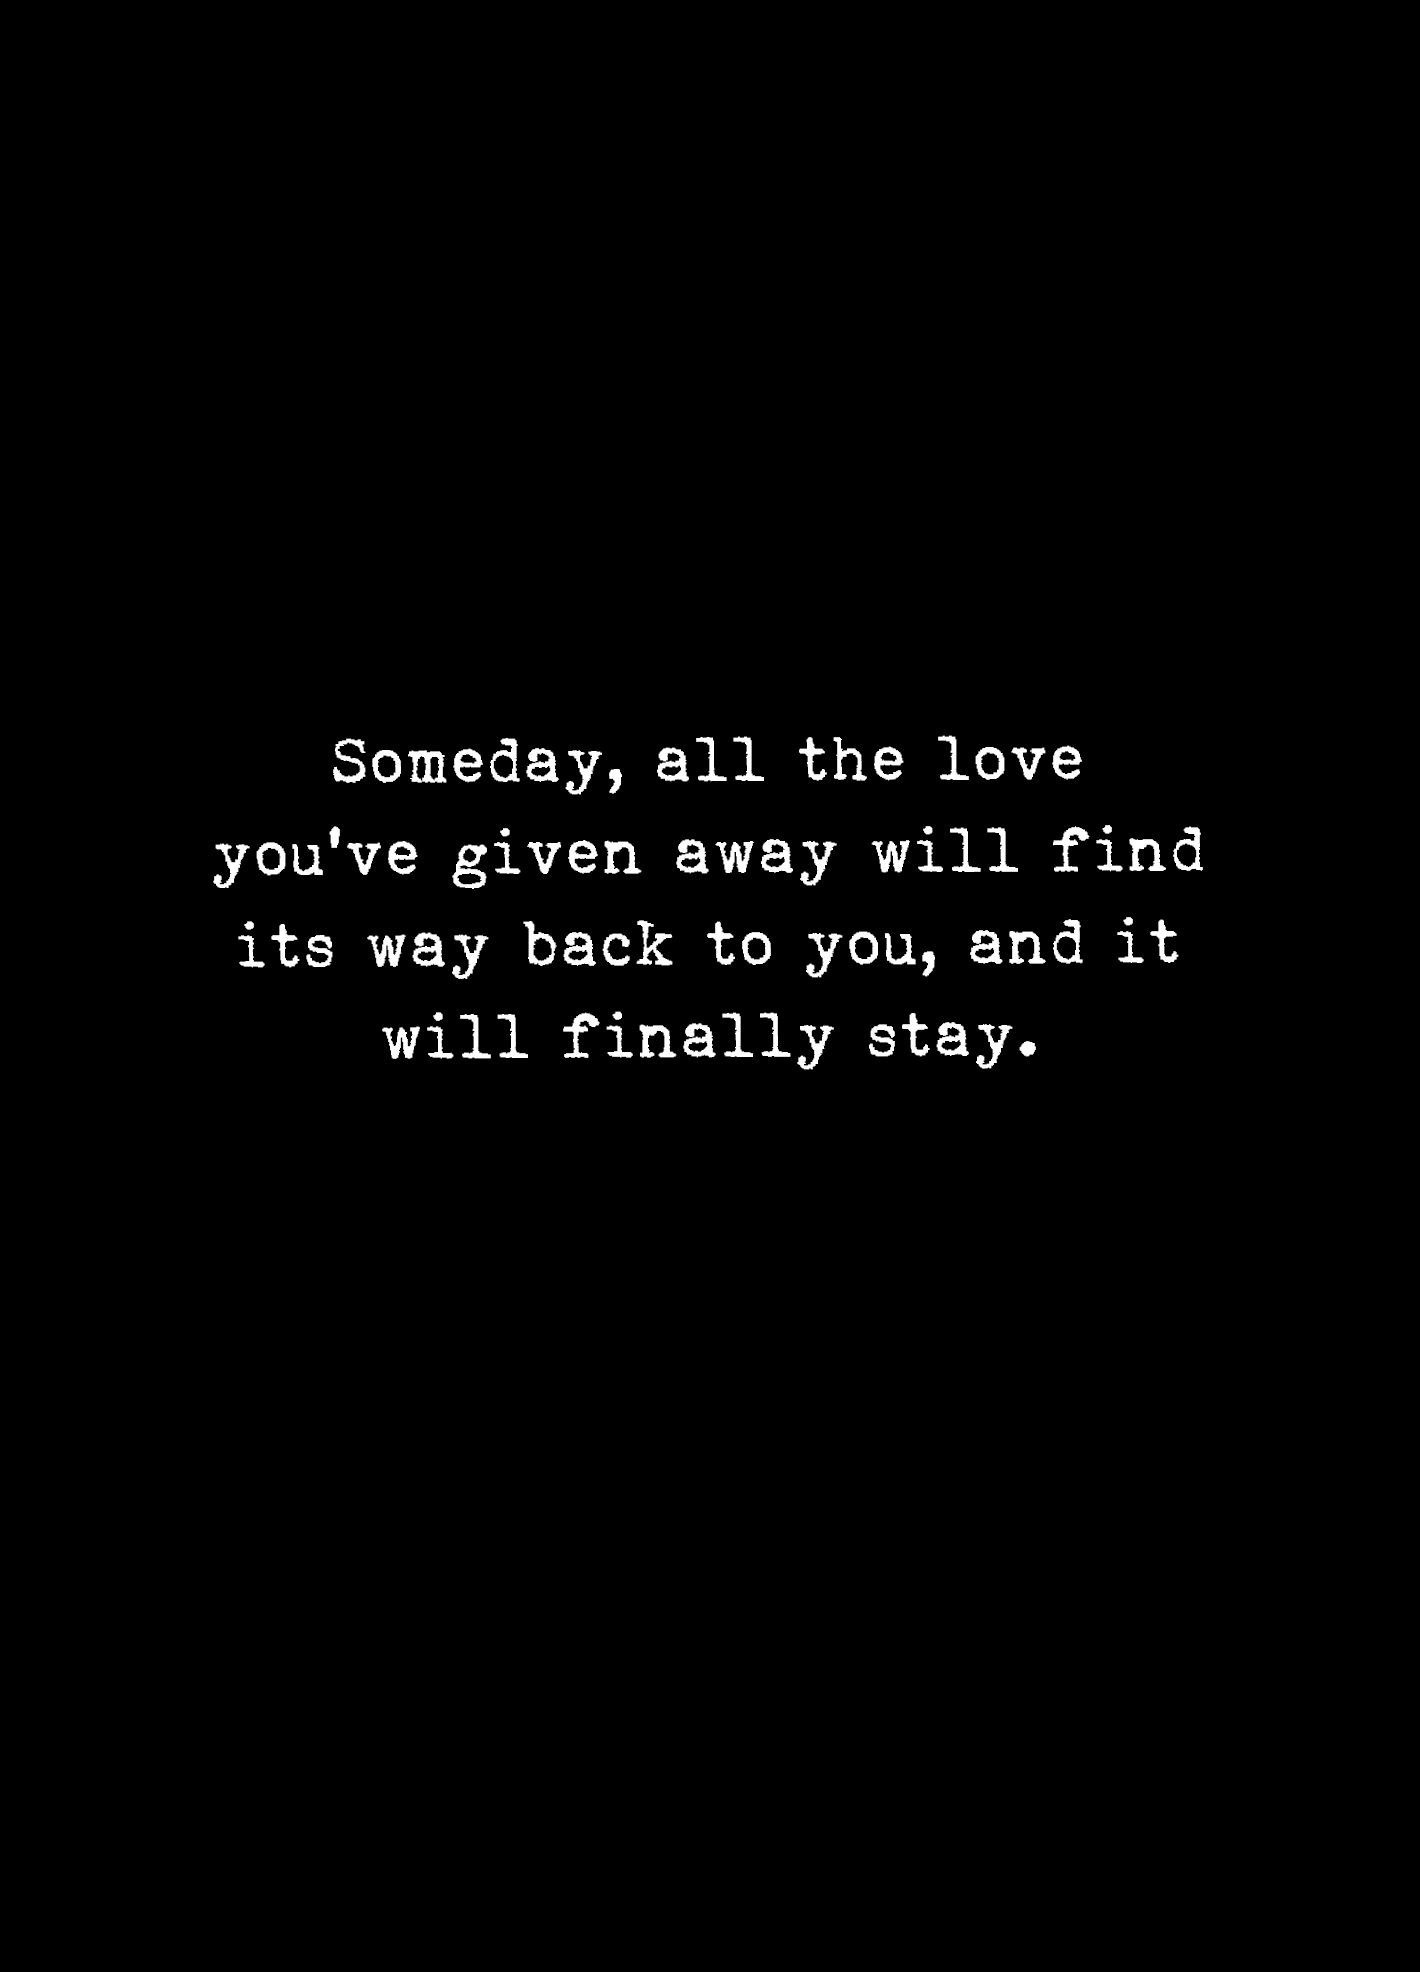 It Will Stay. | Relationship Problems Quotes, Inspirational